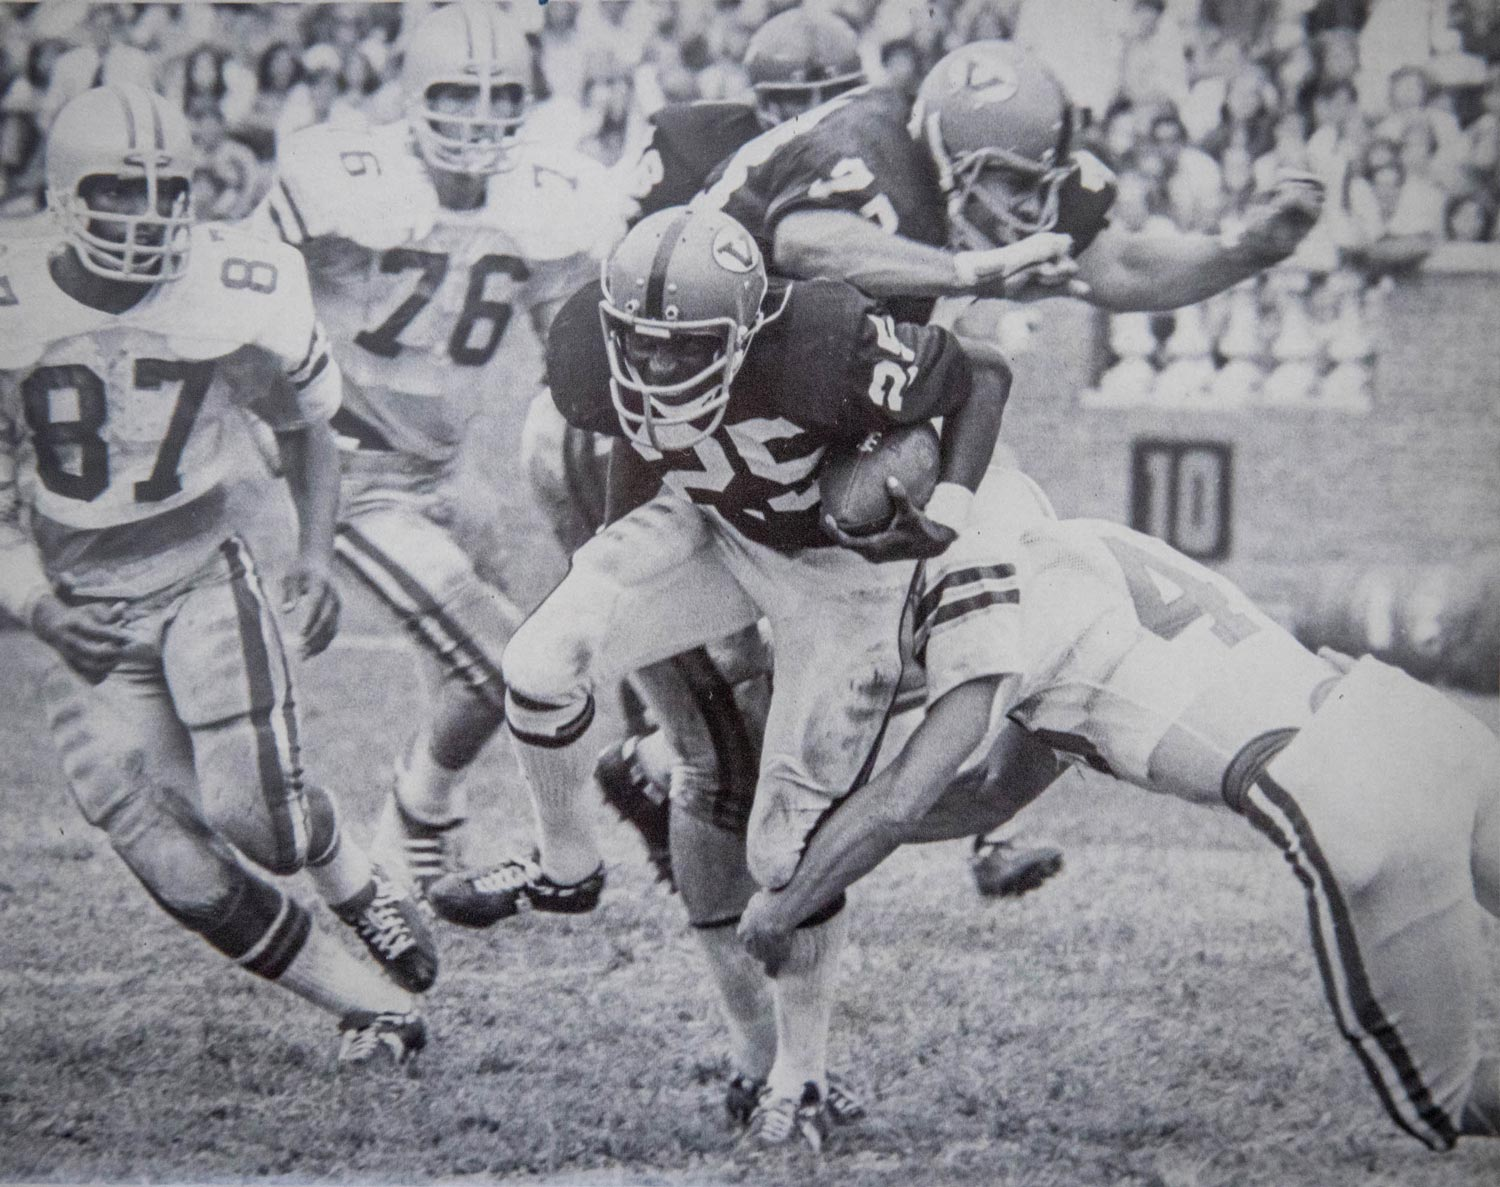 In 1970, Merritt became one of the first four African-American football players at UVA.